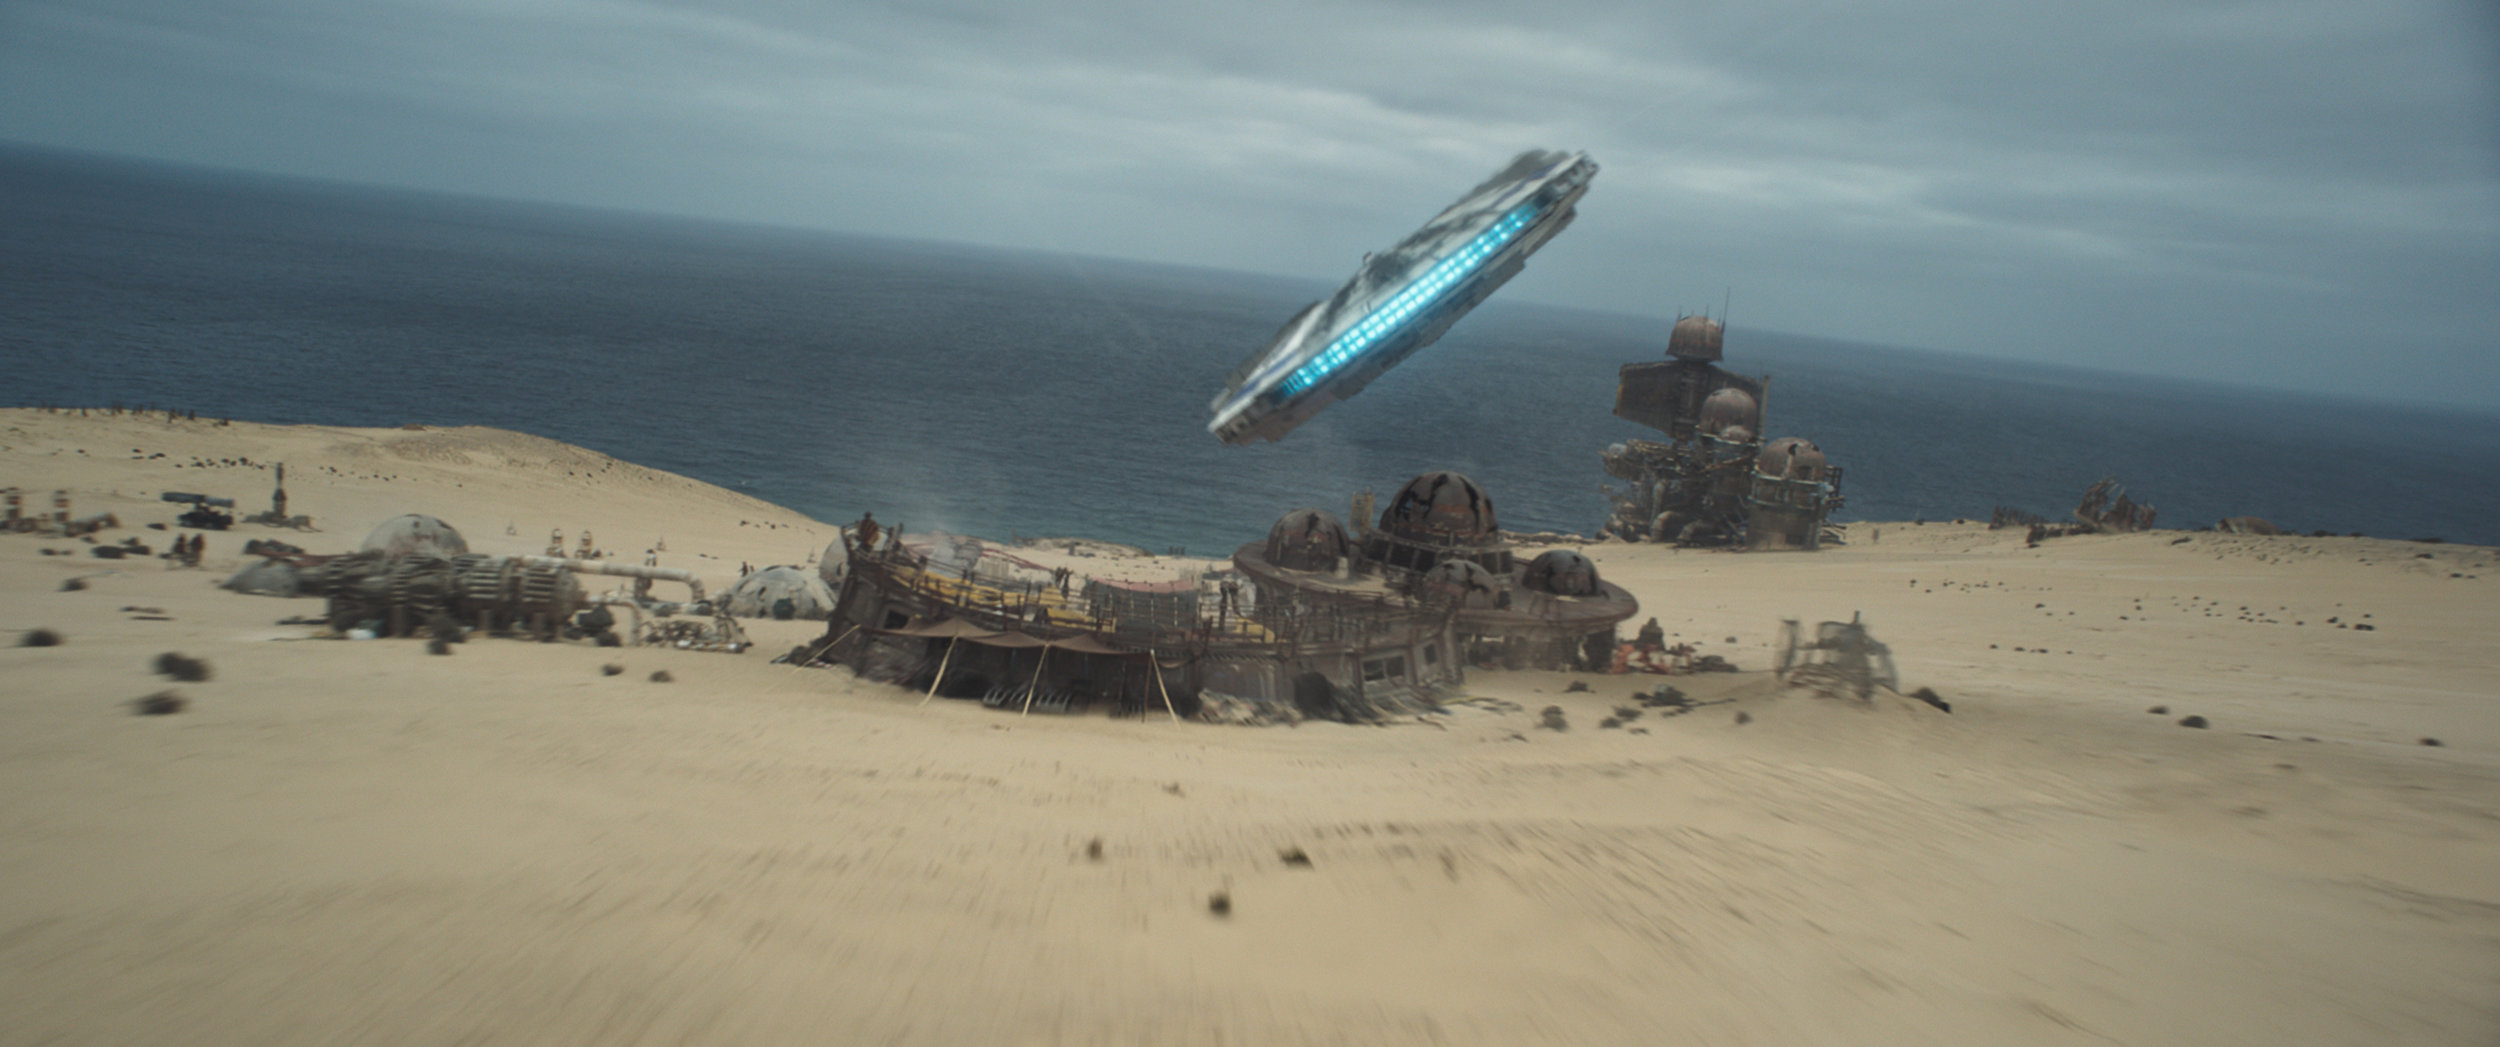 solo-a-star-wars-story-hi-res-image-6.jpg